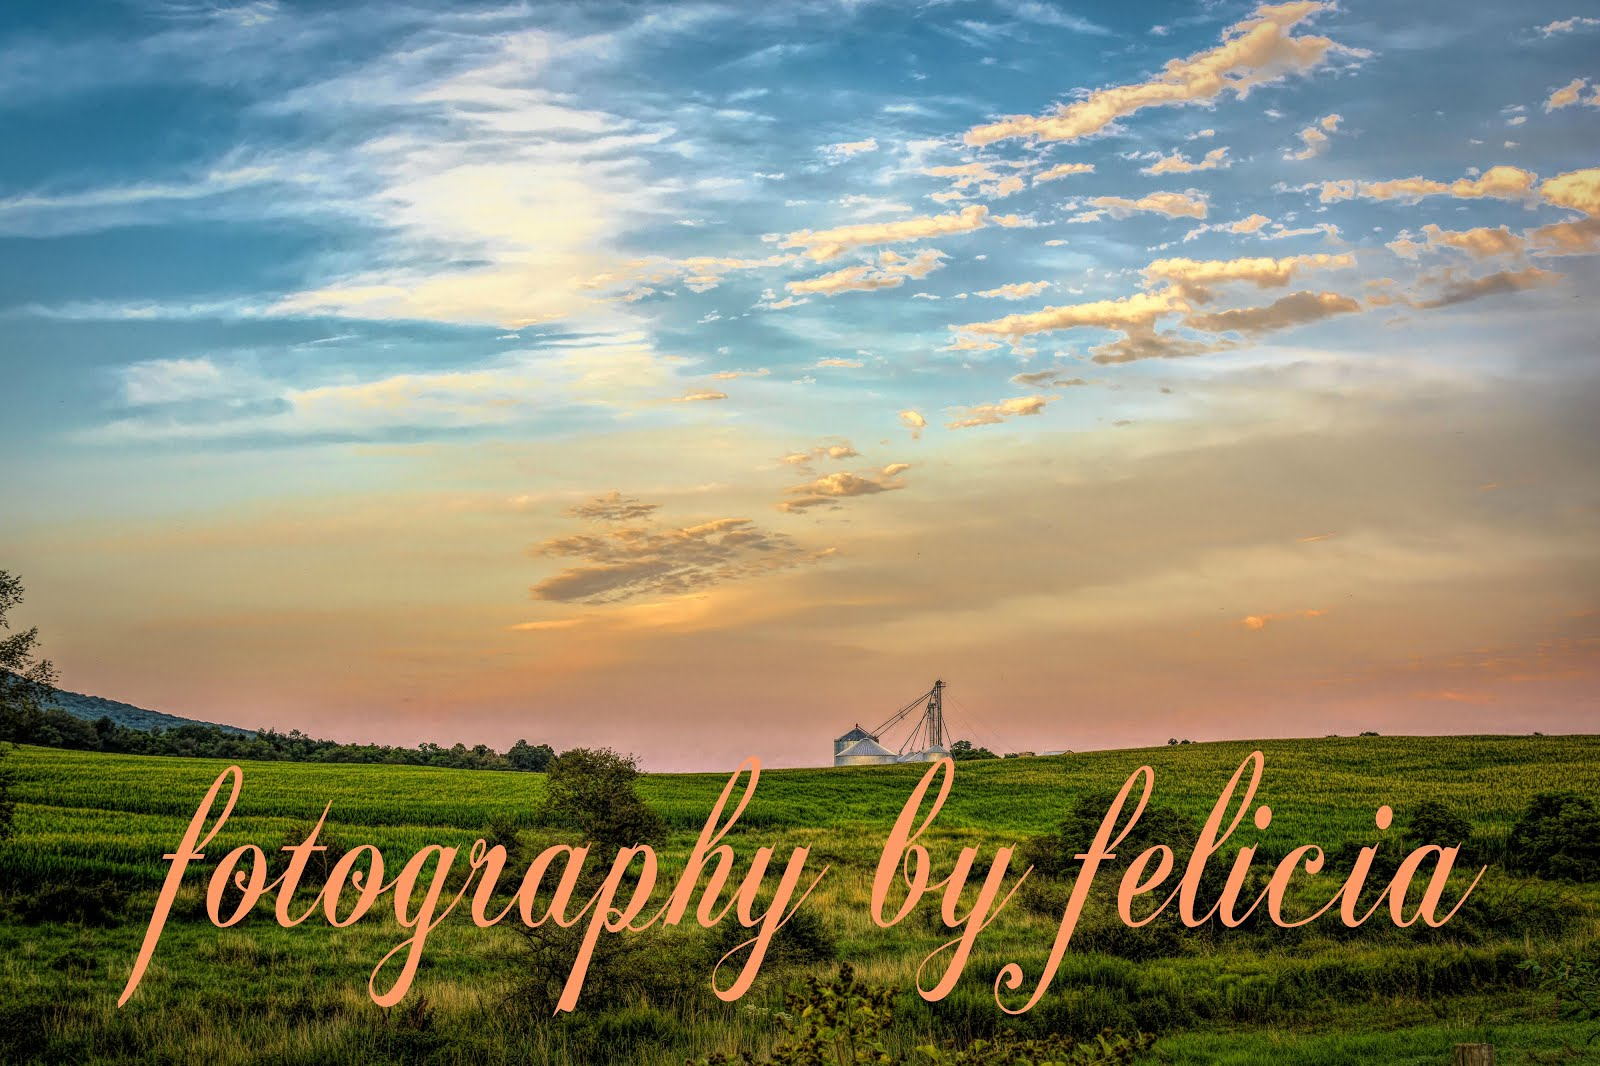 fotography by felicia